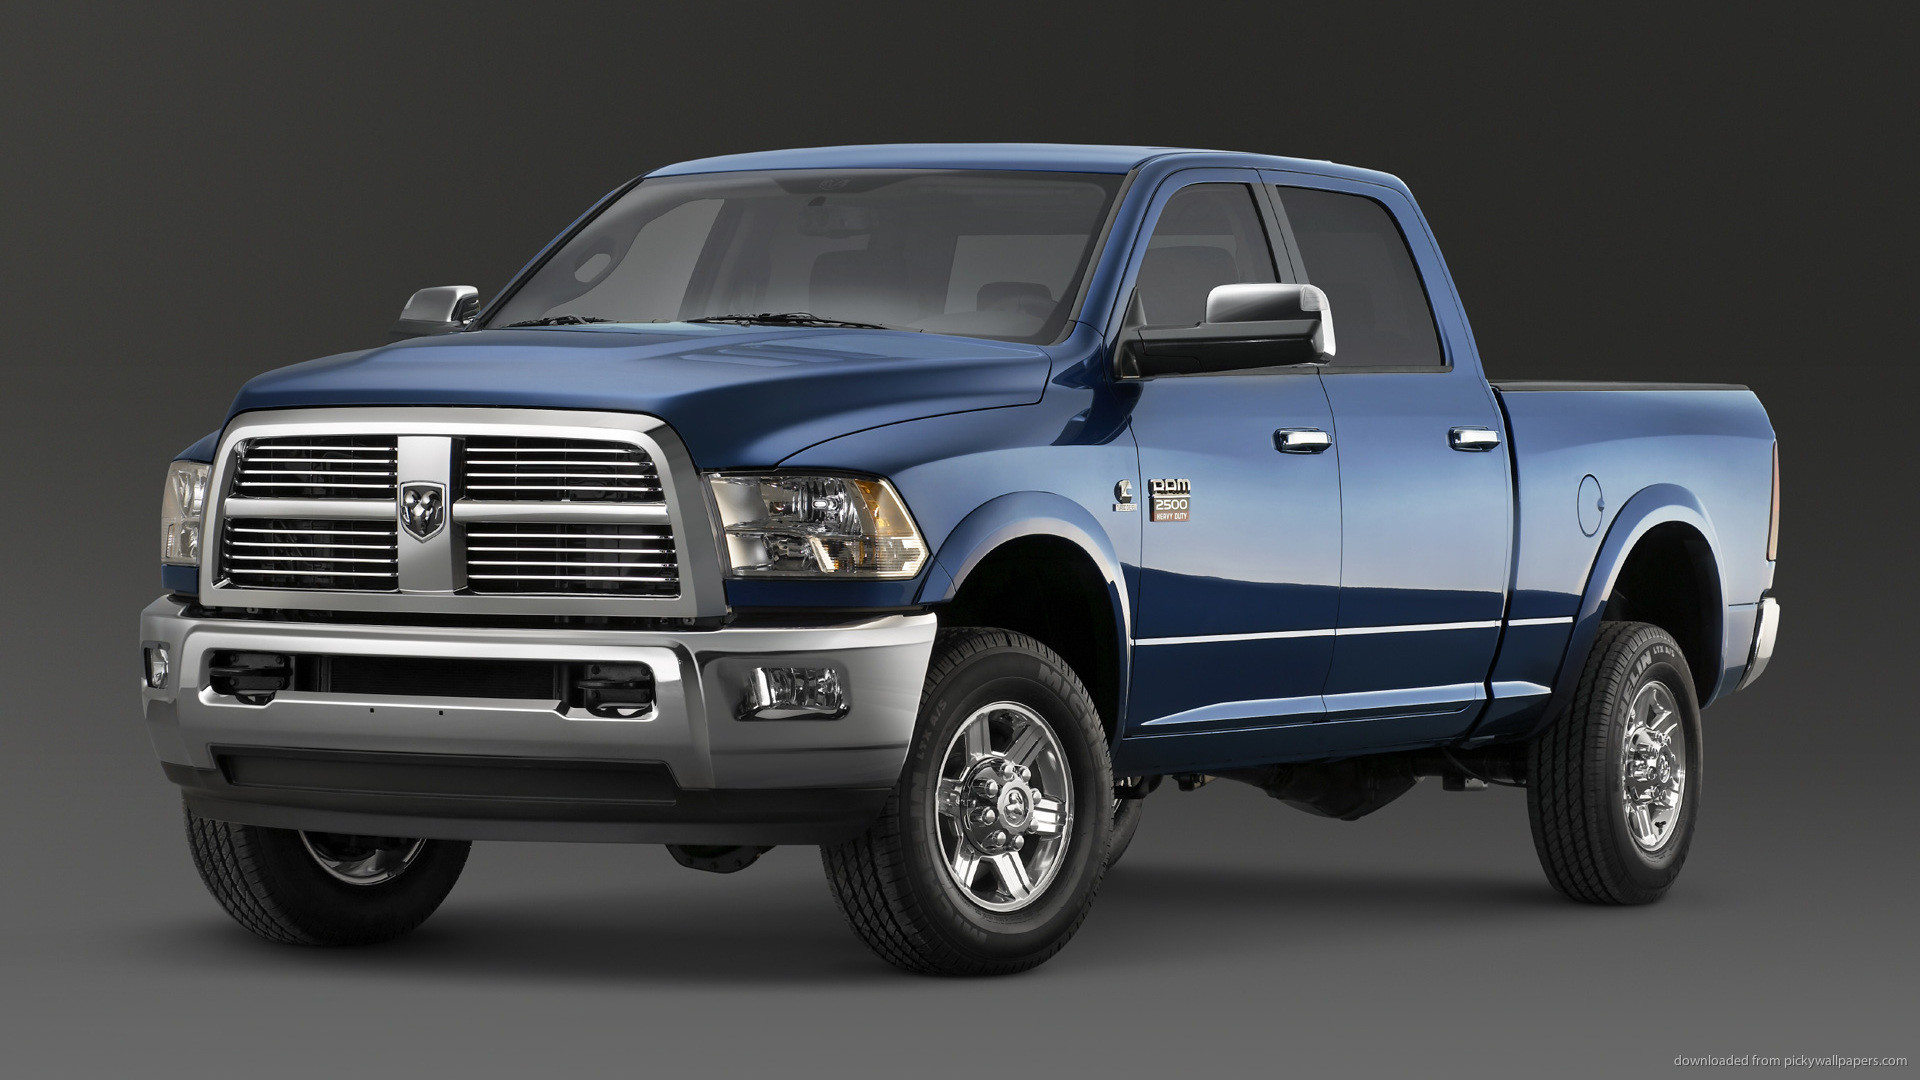 1920x1080 Dodge Ram for